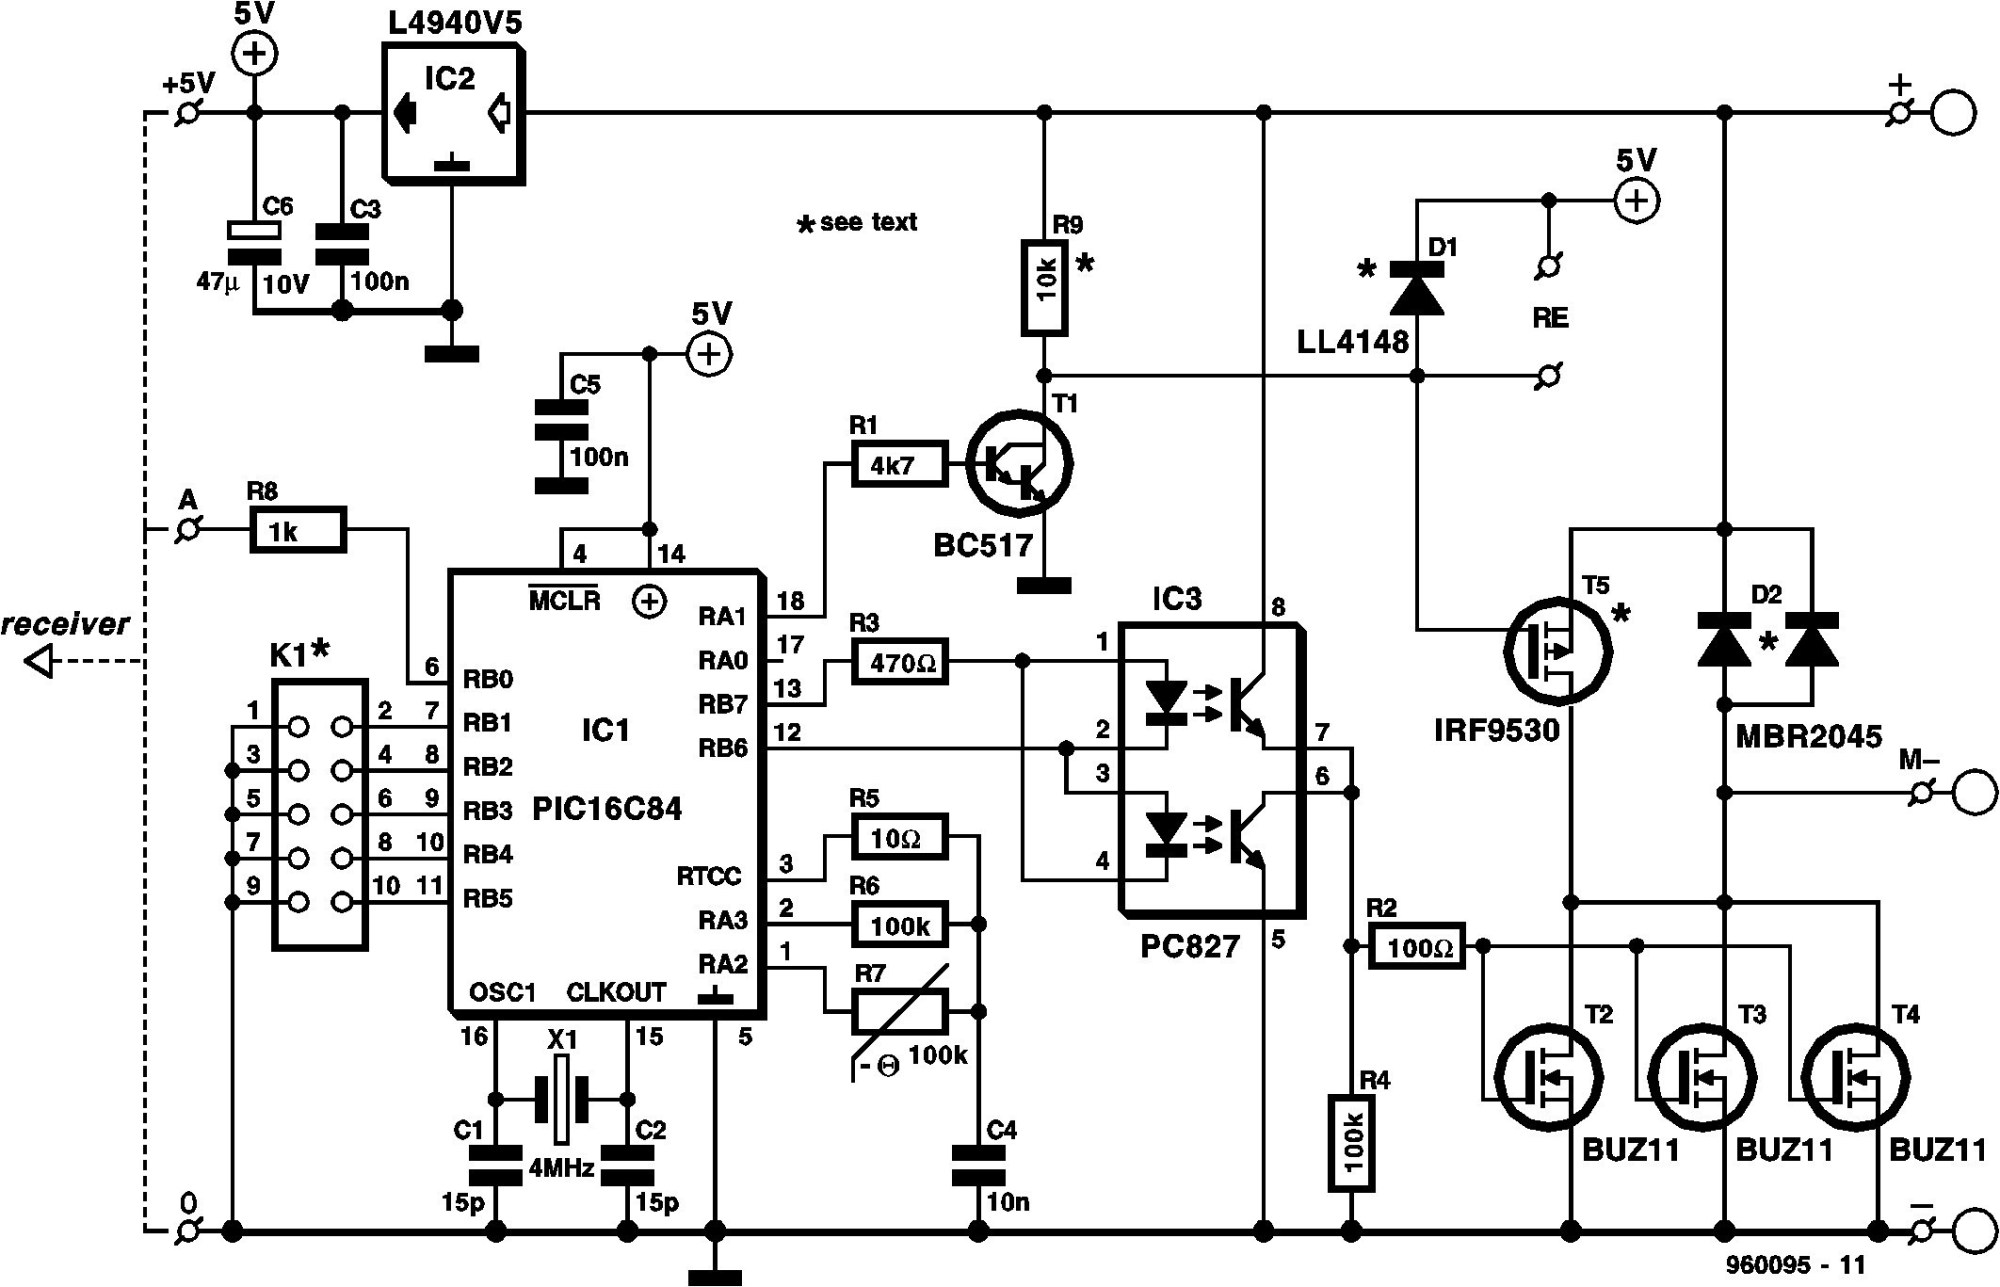 hight resolution of rc car wiring diagram free wiring diagram for you u2022 rh evolvedlife store garage door opener schematic remote control circuits schematic